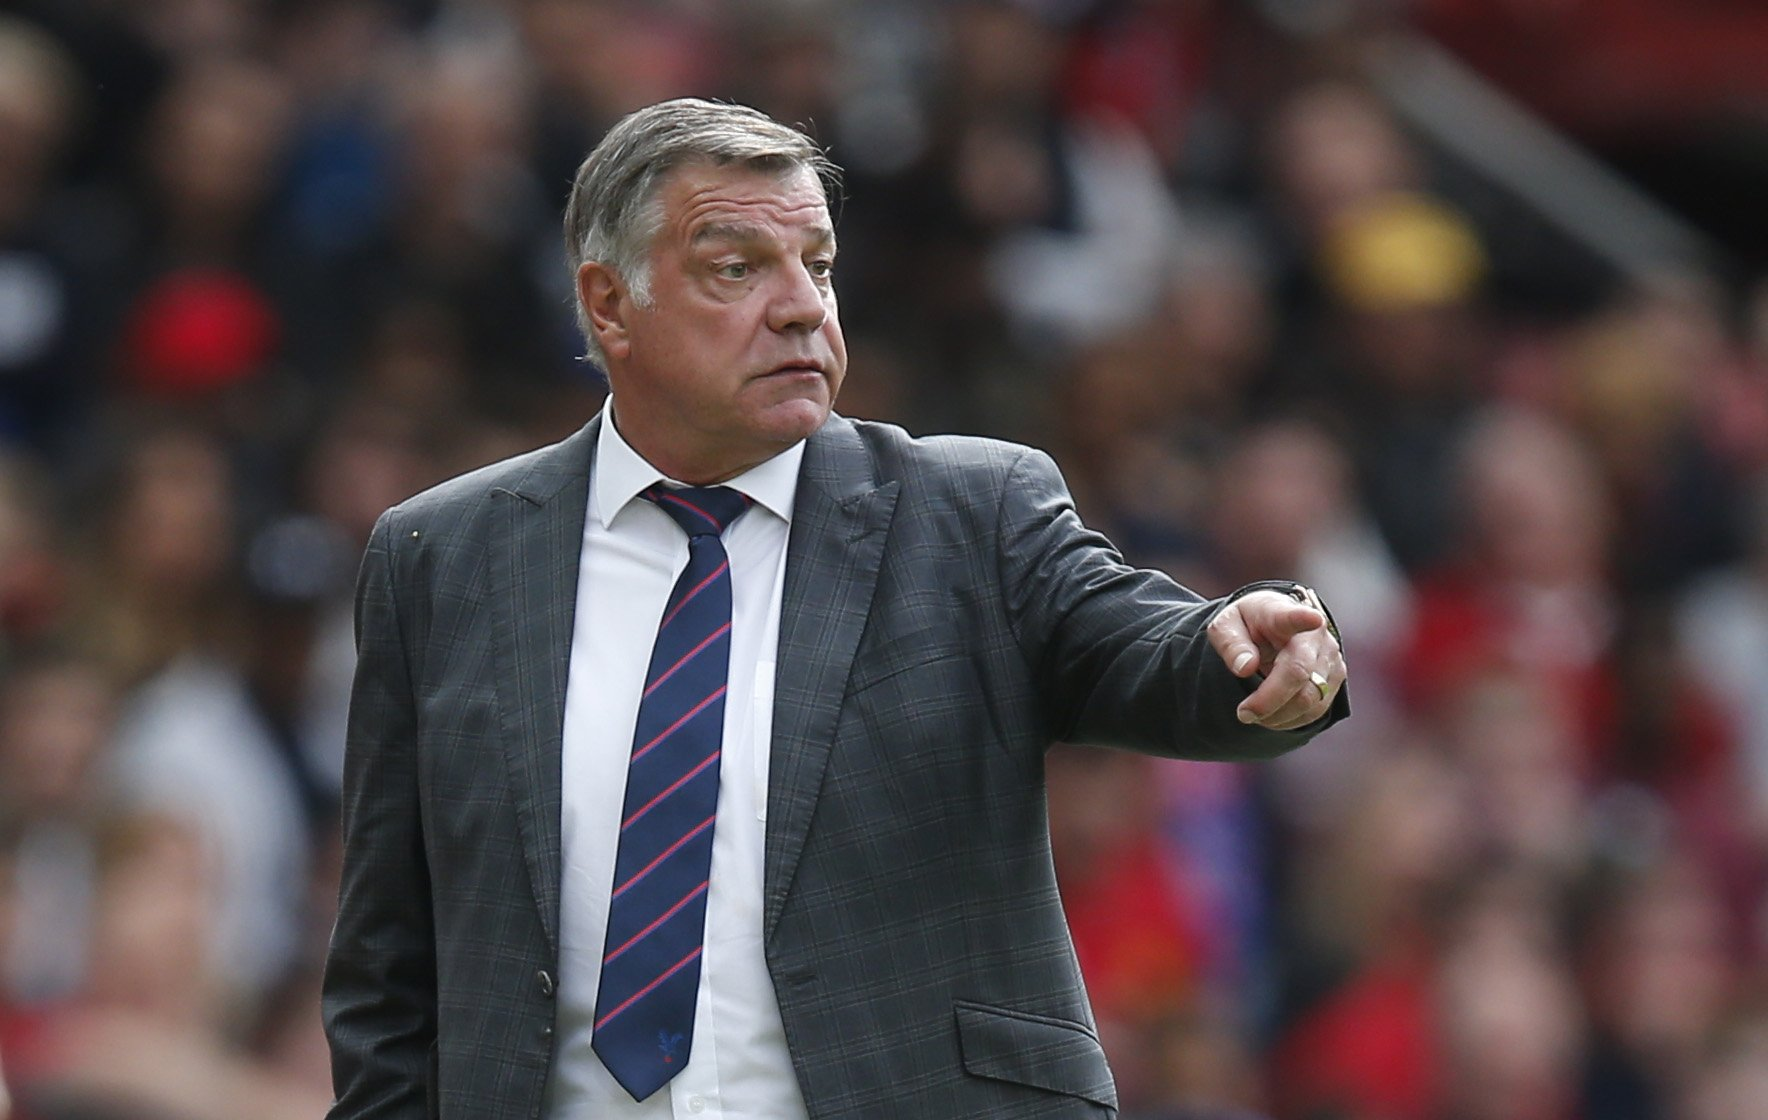 Allardyce Quits As Crystal Palace Manager, Hints At Retirement